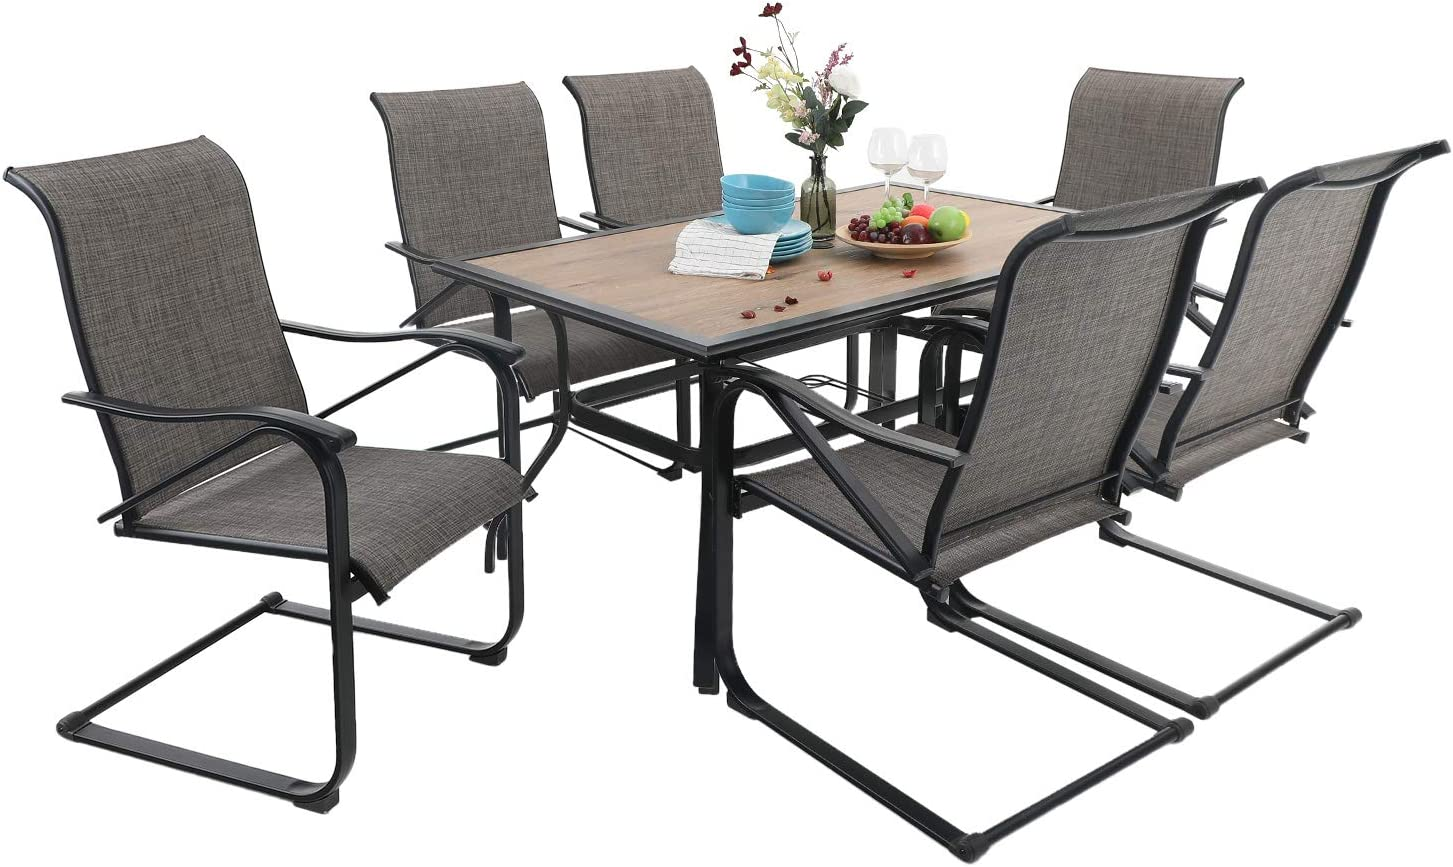 """PHI VILLA Patio Set, Metal 60""""x 37"""" Large Wooden Top Patio Dining Table and 6 Sling Motion Chairs 7 Piece Outdoor Furniture Garden Backyard Bistro Set, 1.56"""" Umbrella Hole, Black"""